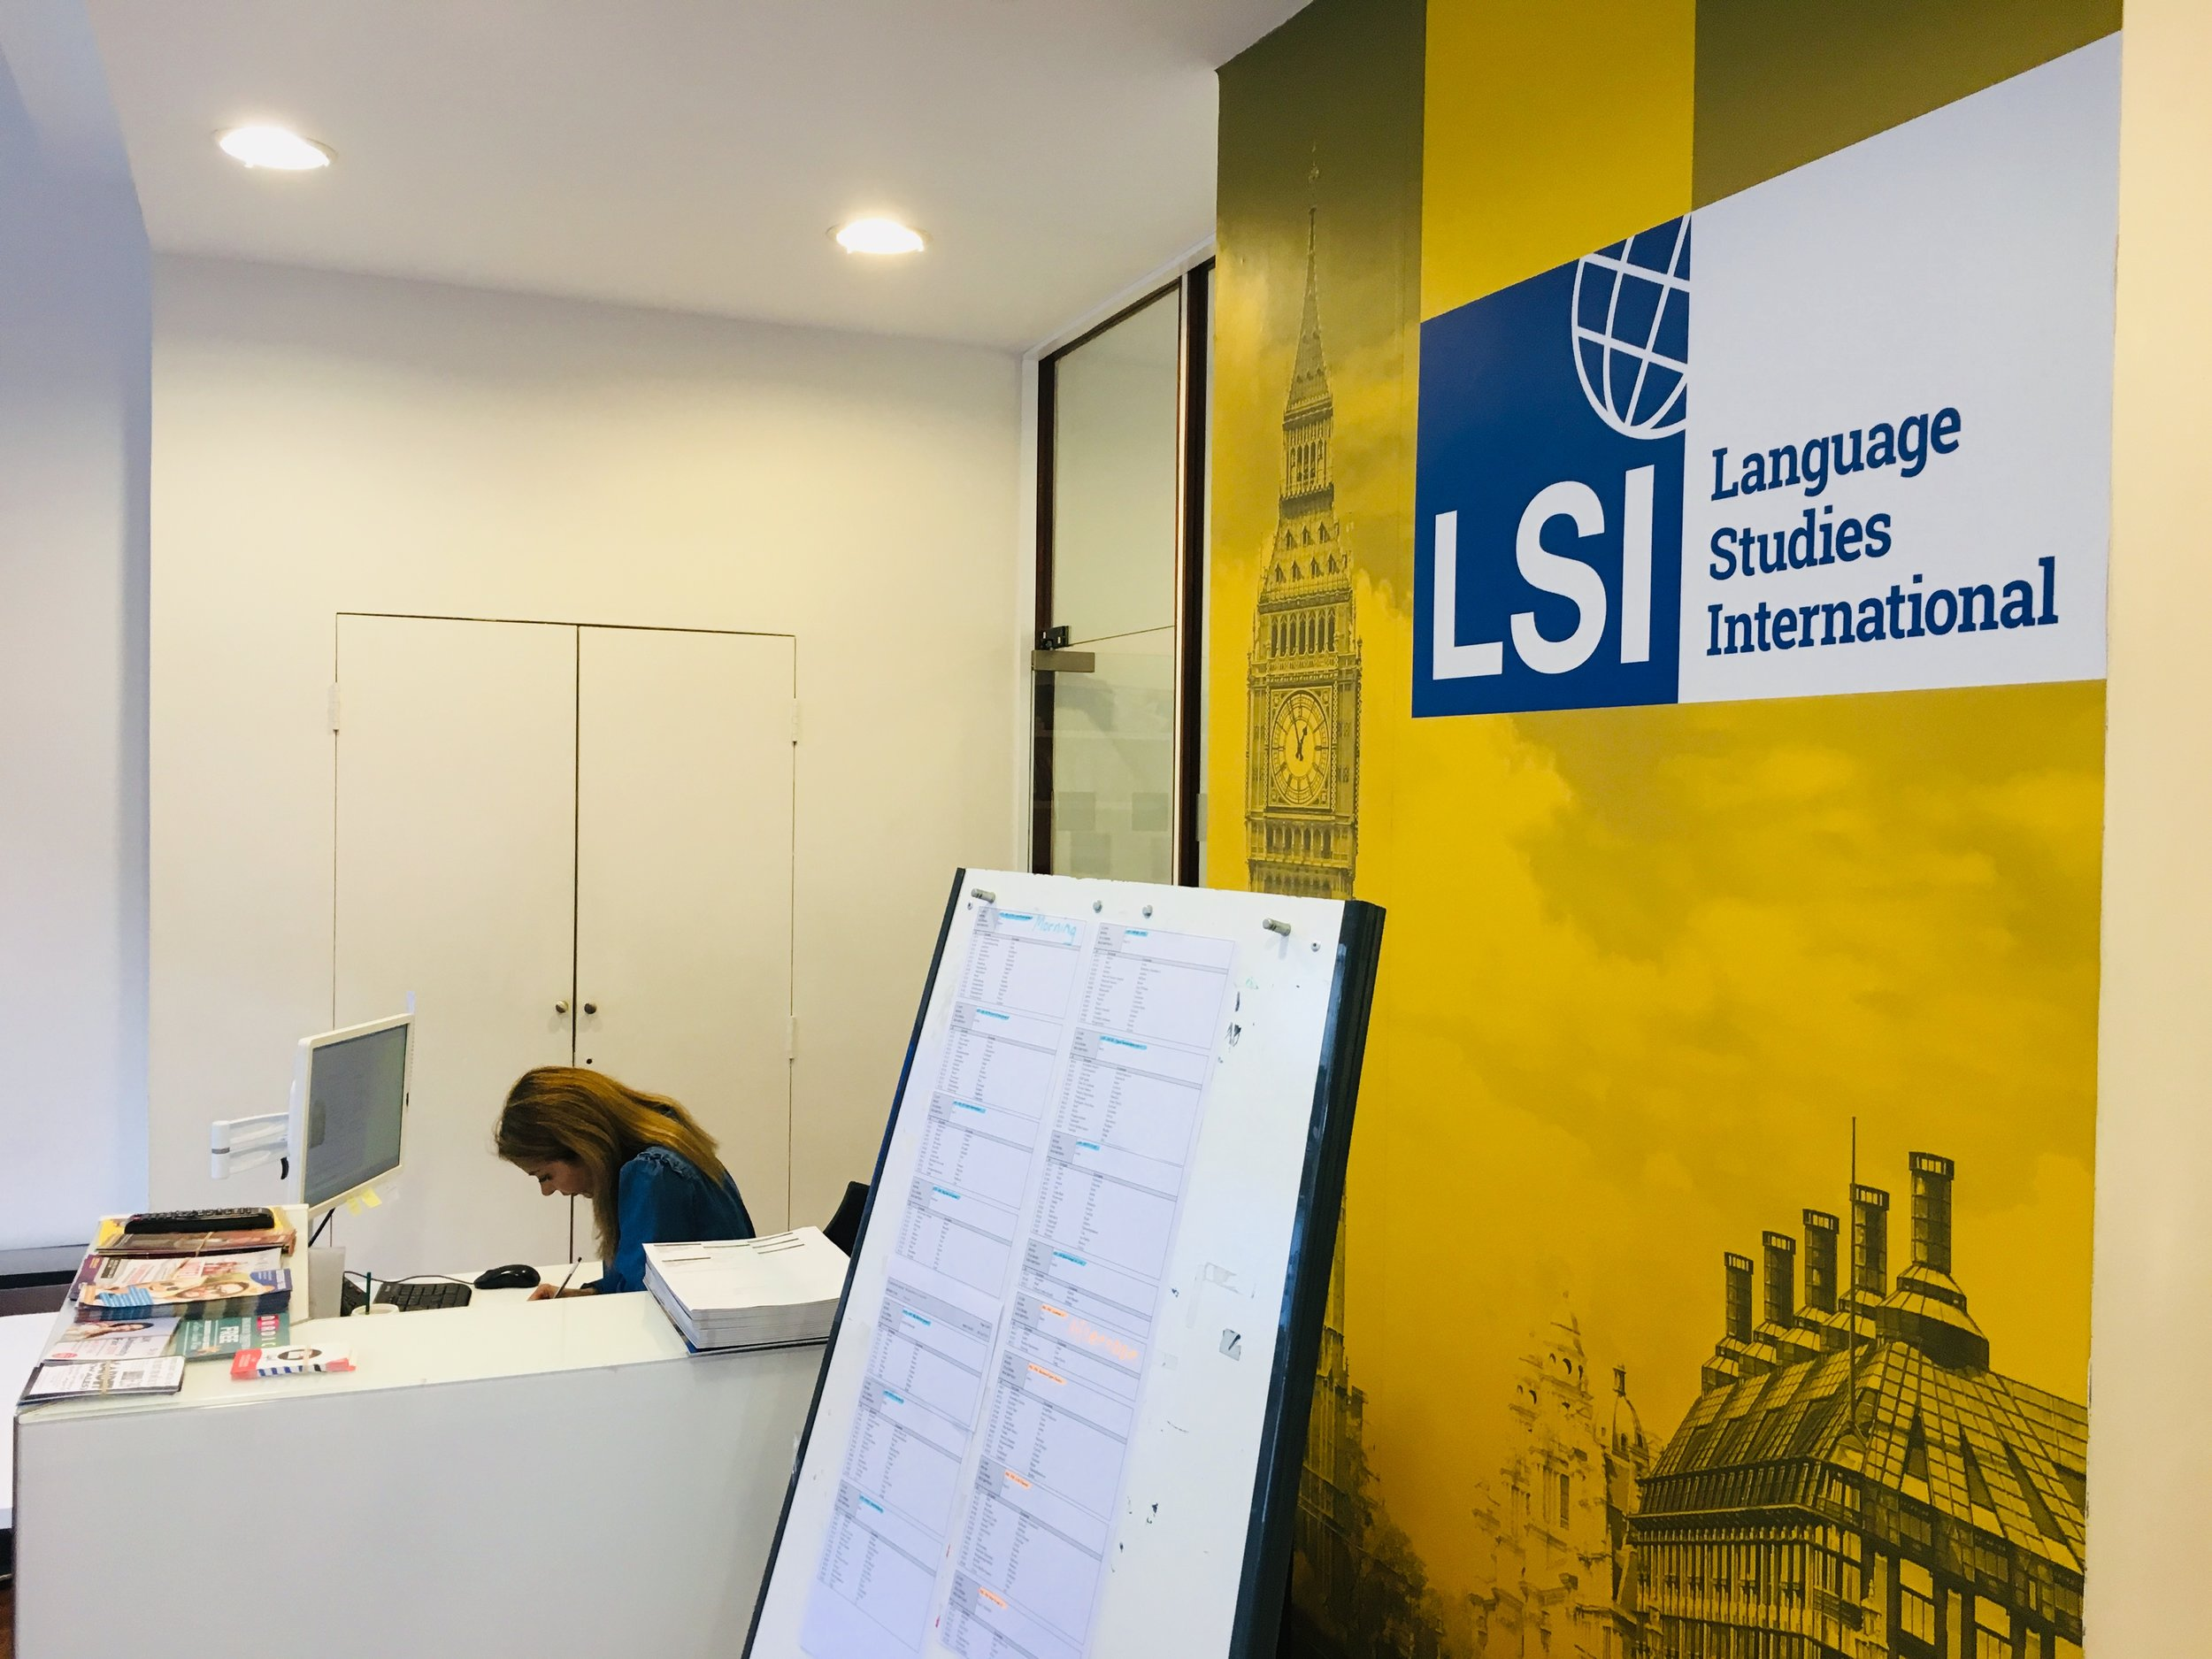 LSI - The school is situated next to the famous Oxford street which gives students a privilege of studying and having fun right in the heart of London. Although the school is in the city center, it is surrounded by quiet streets which makes the learning process effective and efficient.Welcome to LSI - a school with a world-known name!More about LSI:https://www.lsi.edu/en/learn-english-in-england